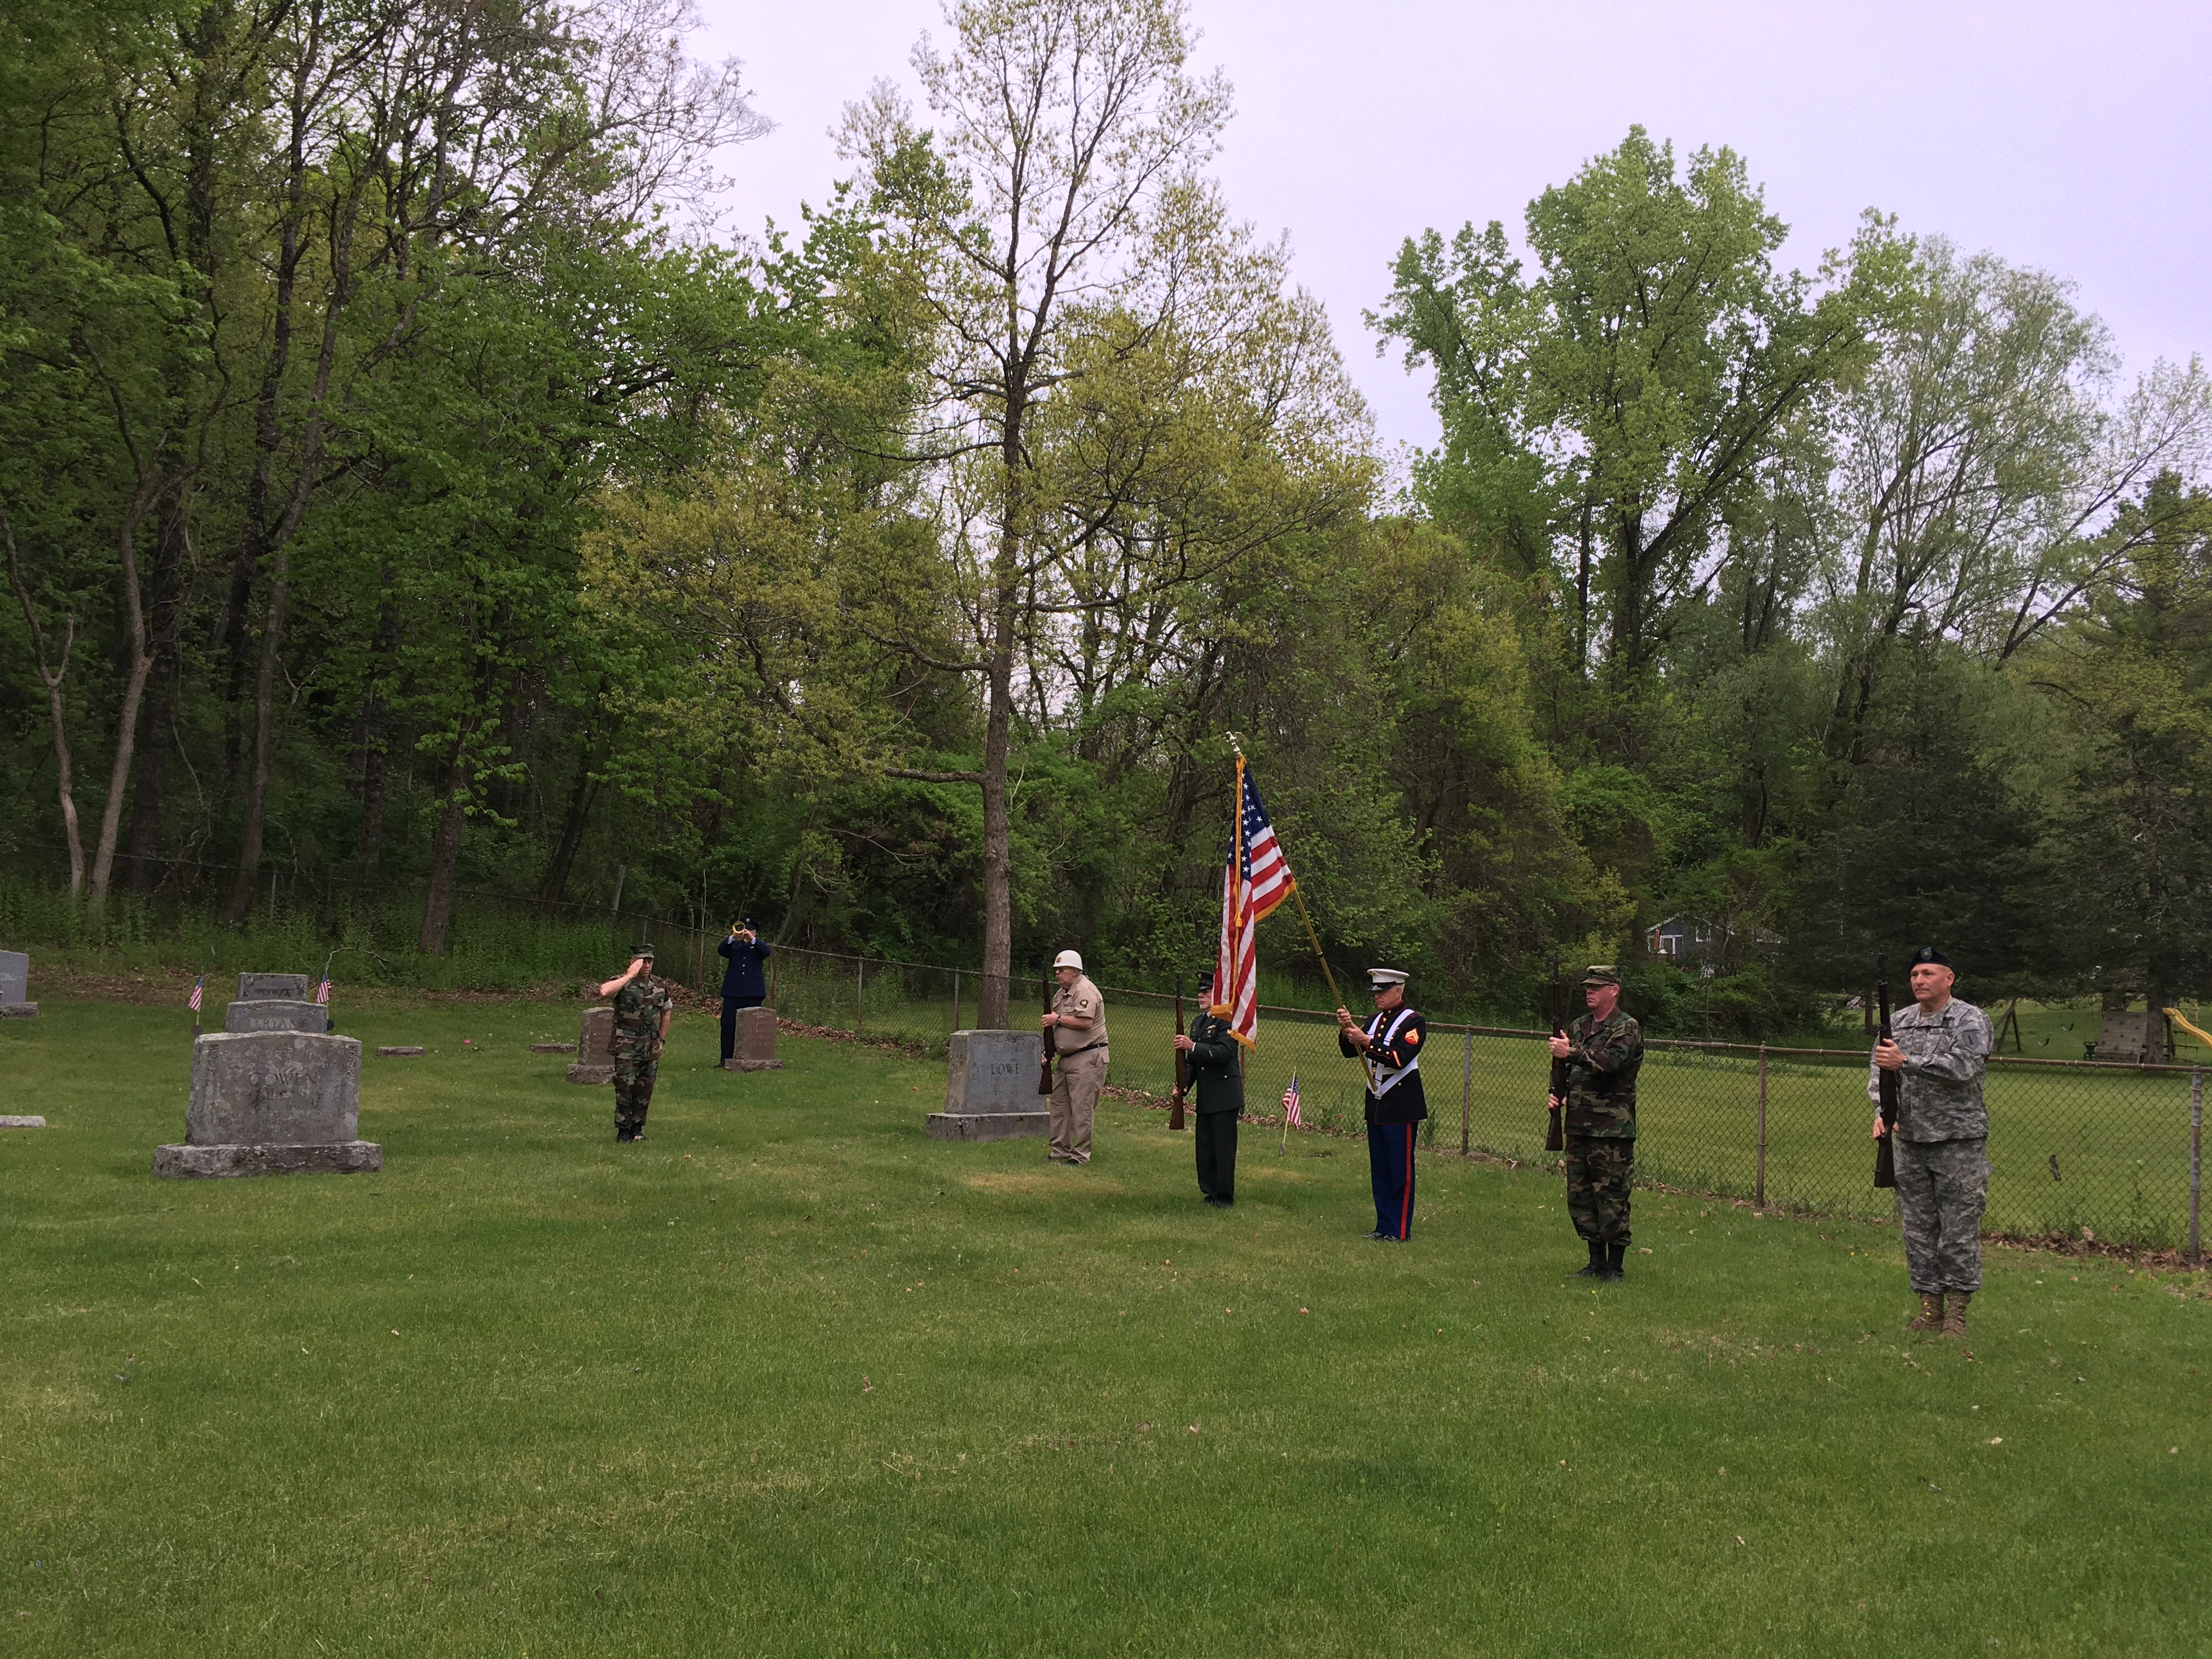 <strong>A gun salute to honor those who lost their lives in military service was givenin Falls Village (the Dublin Road Cemetery)on Monday, May 25.<em>Photo by Cynthia Hochswender</em></strong>